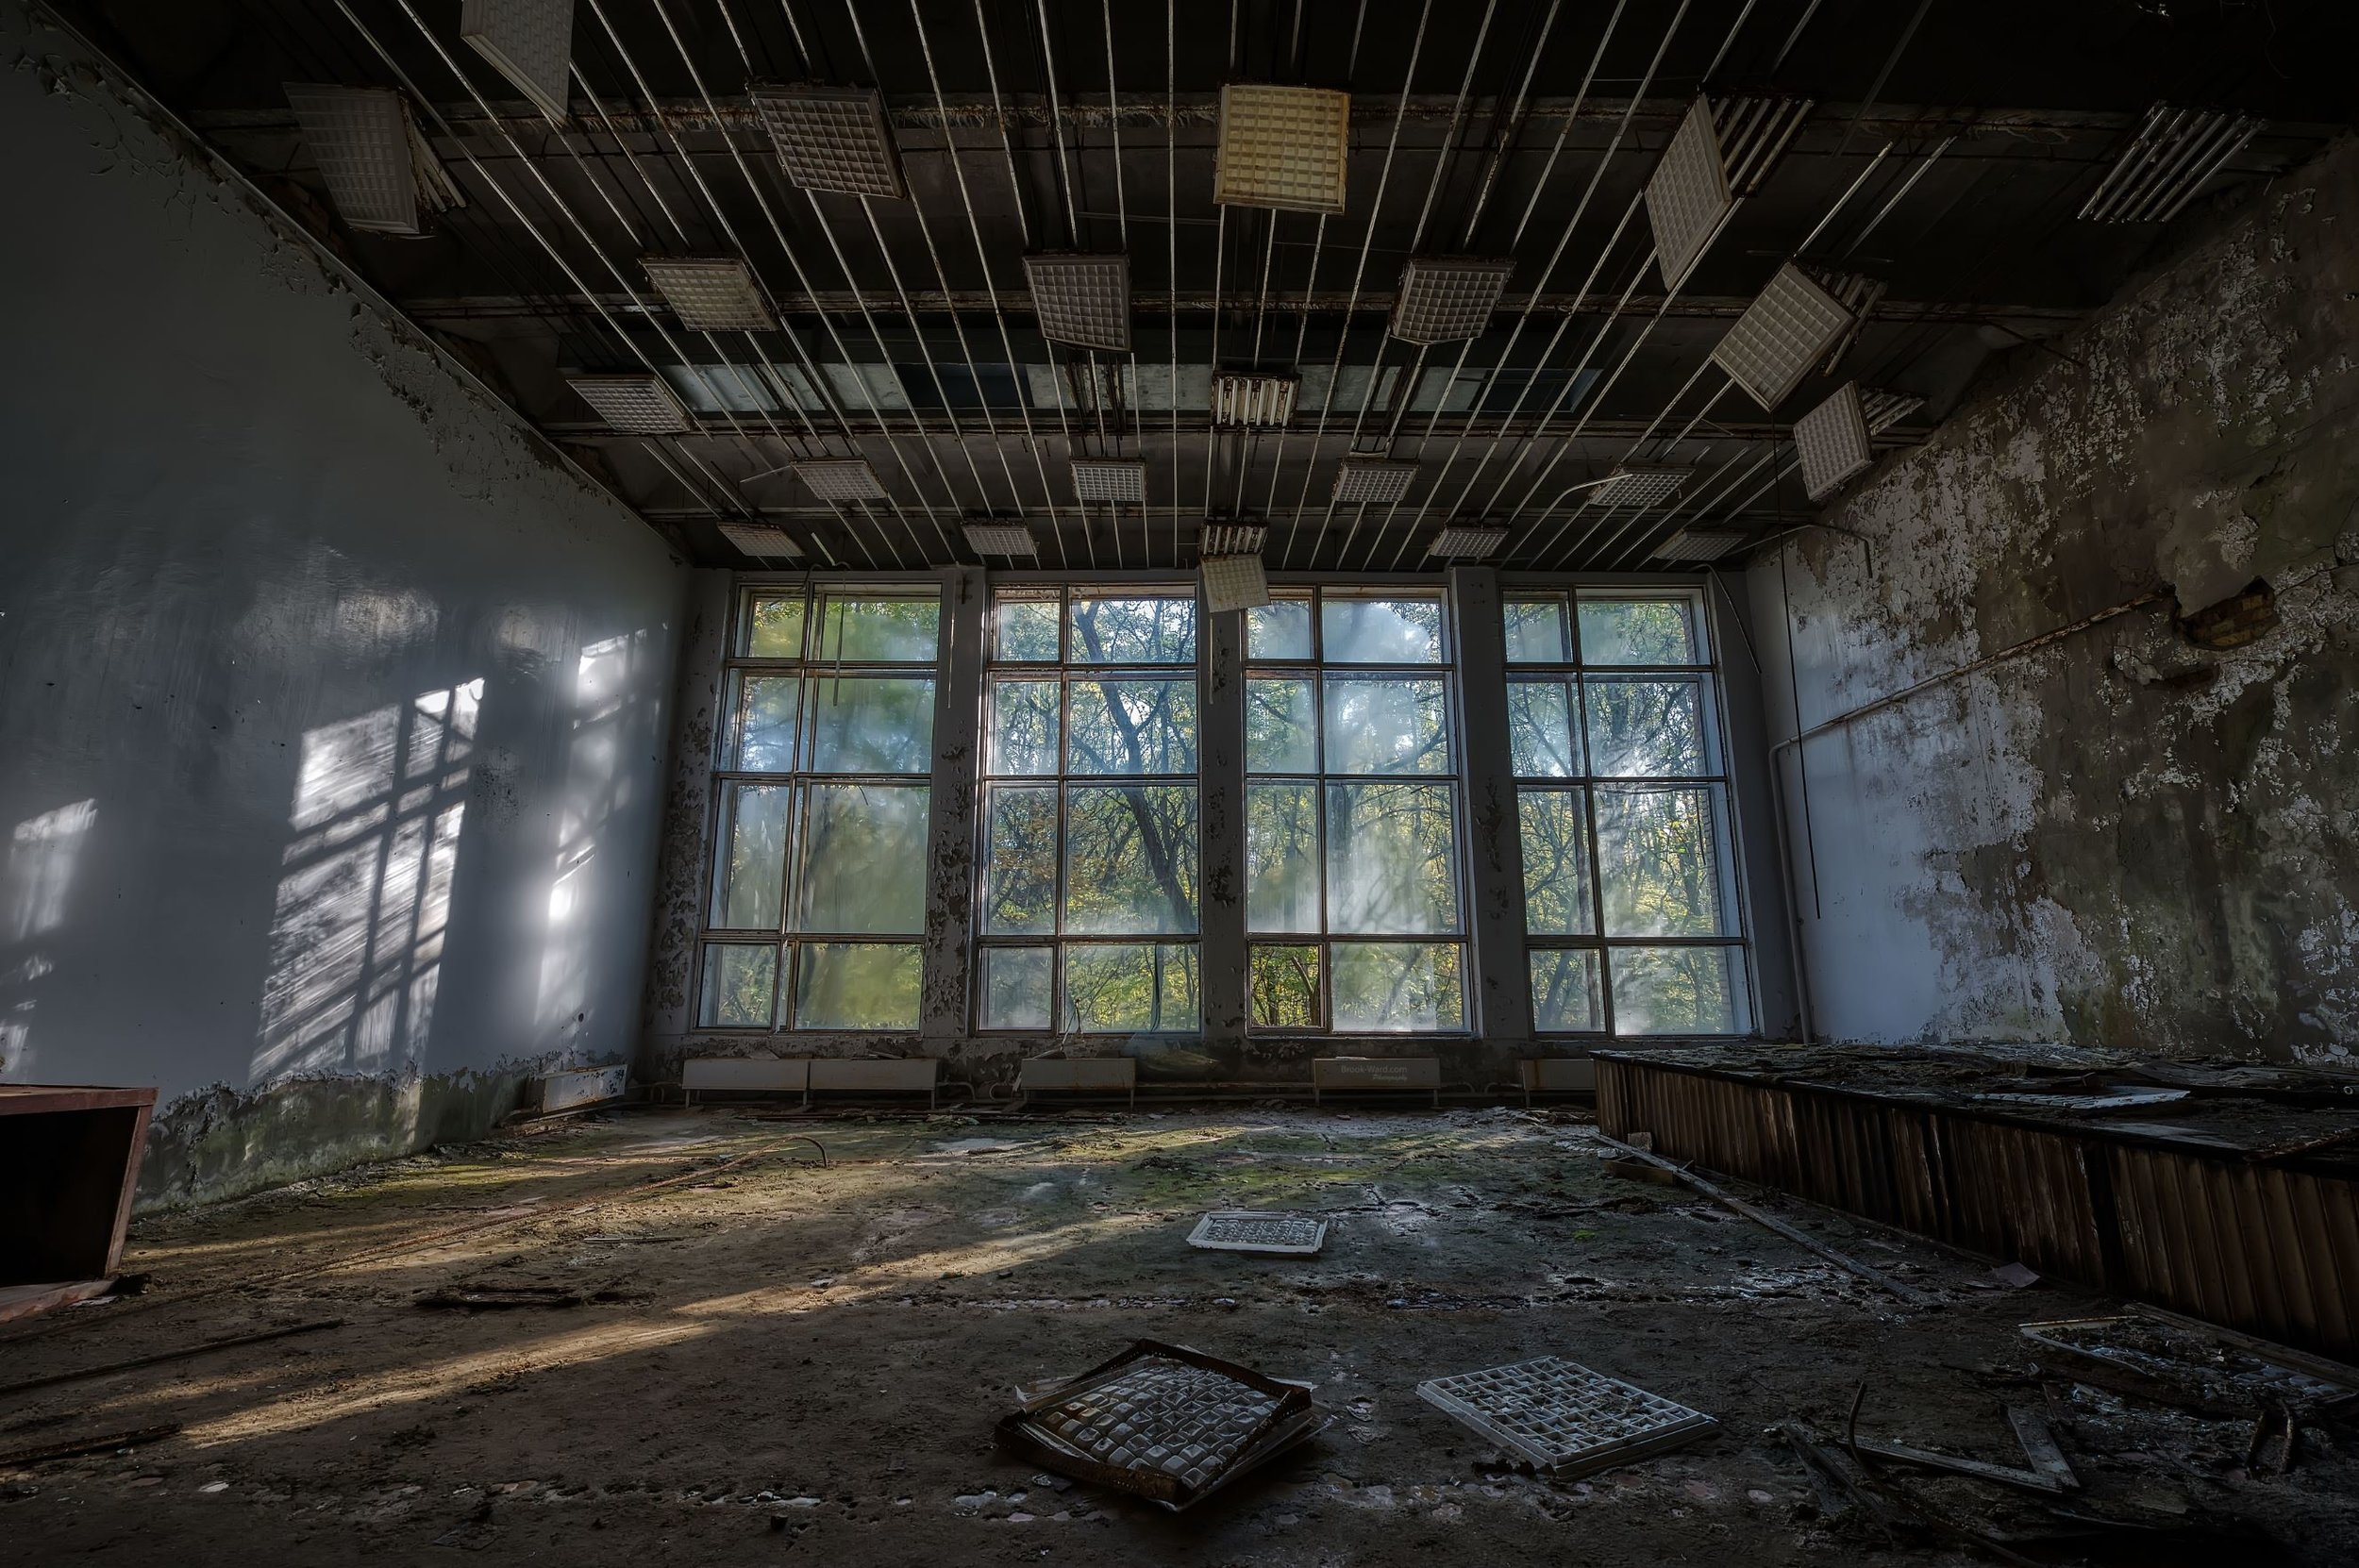 Chernobyl - Pripyat Cultural Center